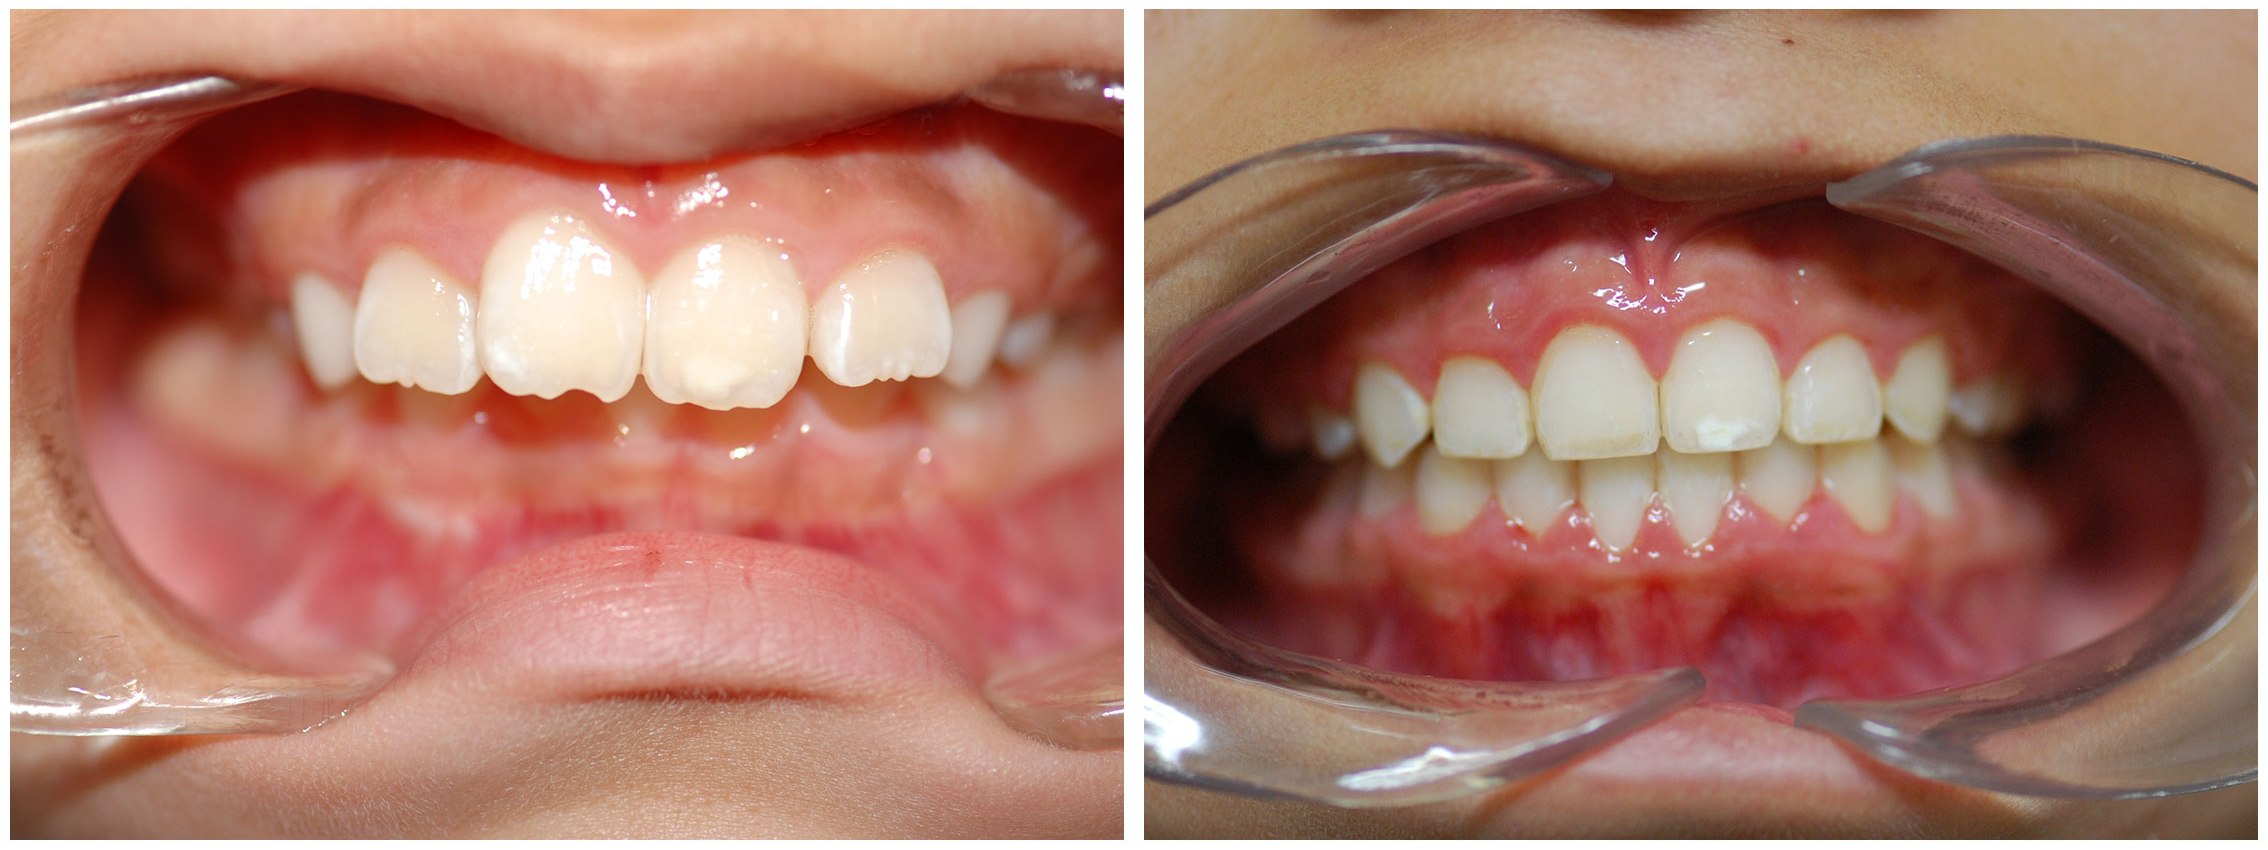 Childrens Dental Braces Before & After